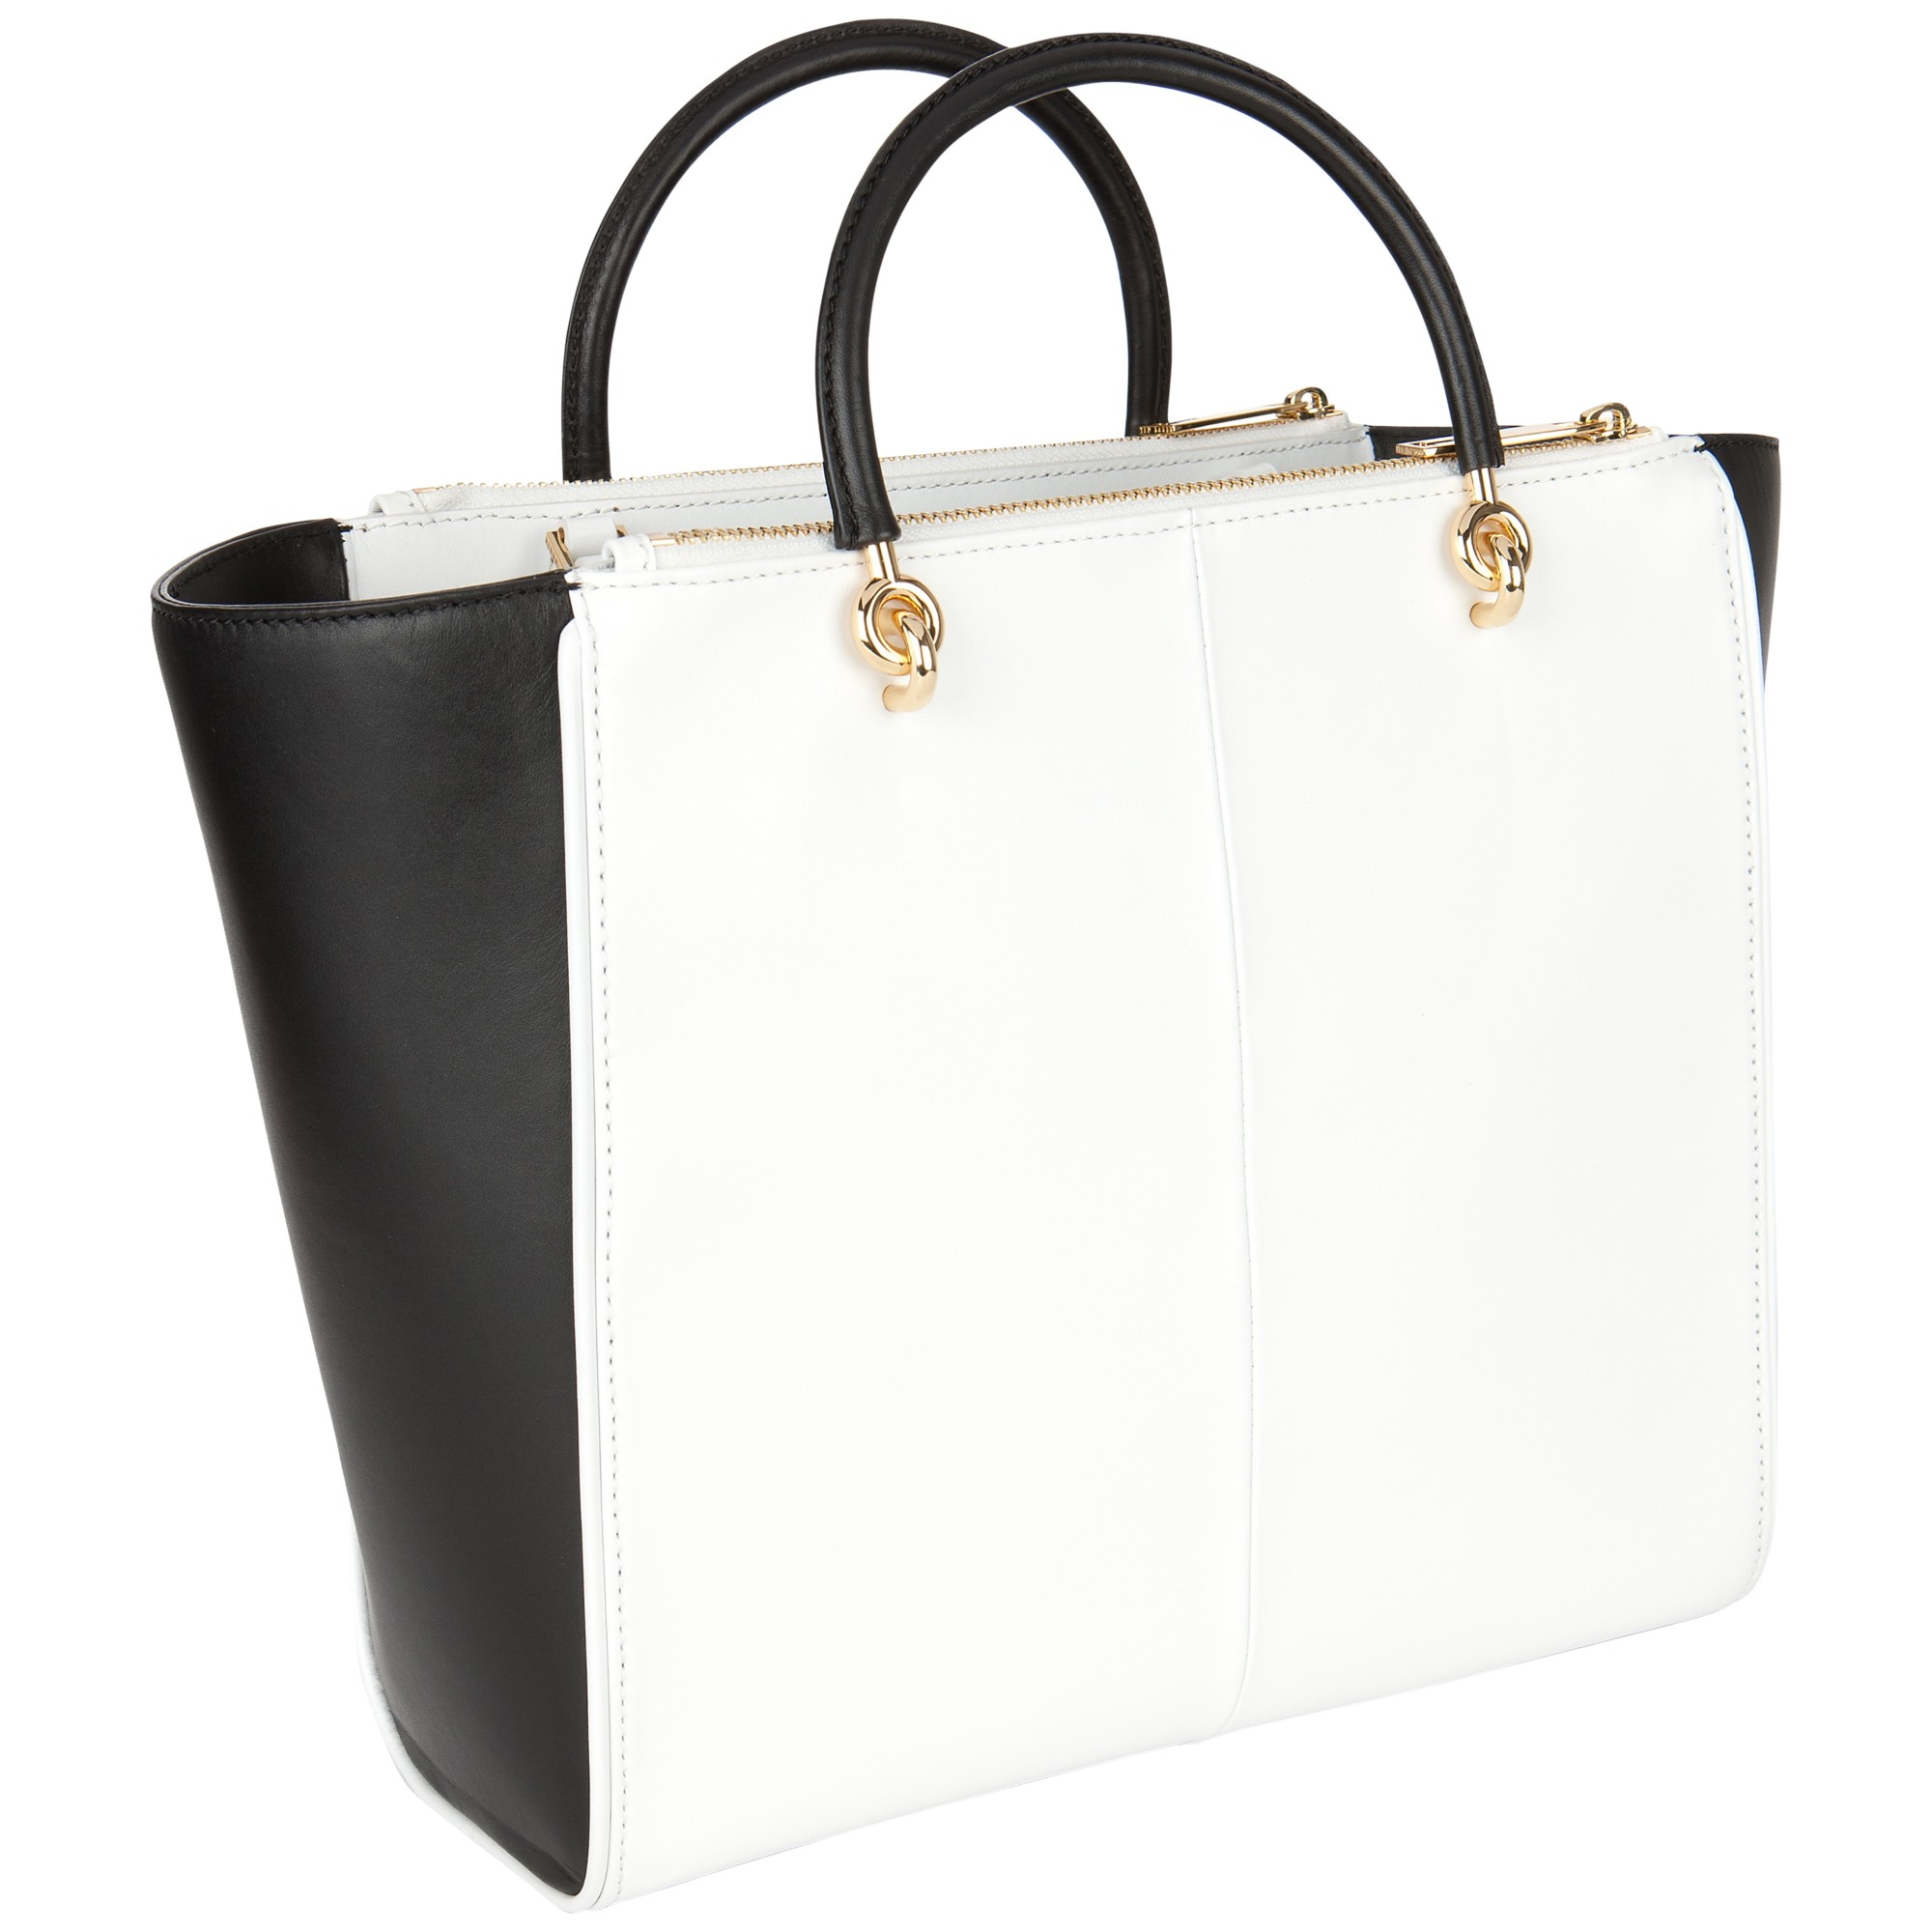 Ted Baker Per Bags John Lewis Handbag Collections